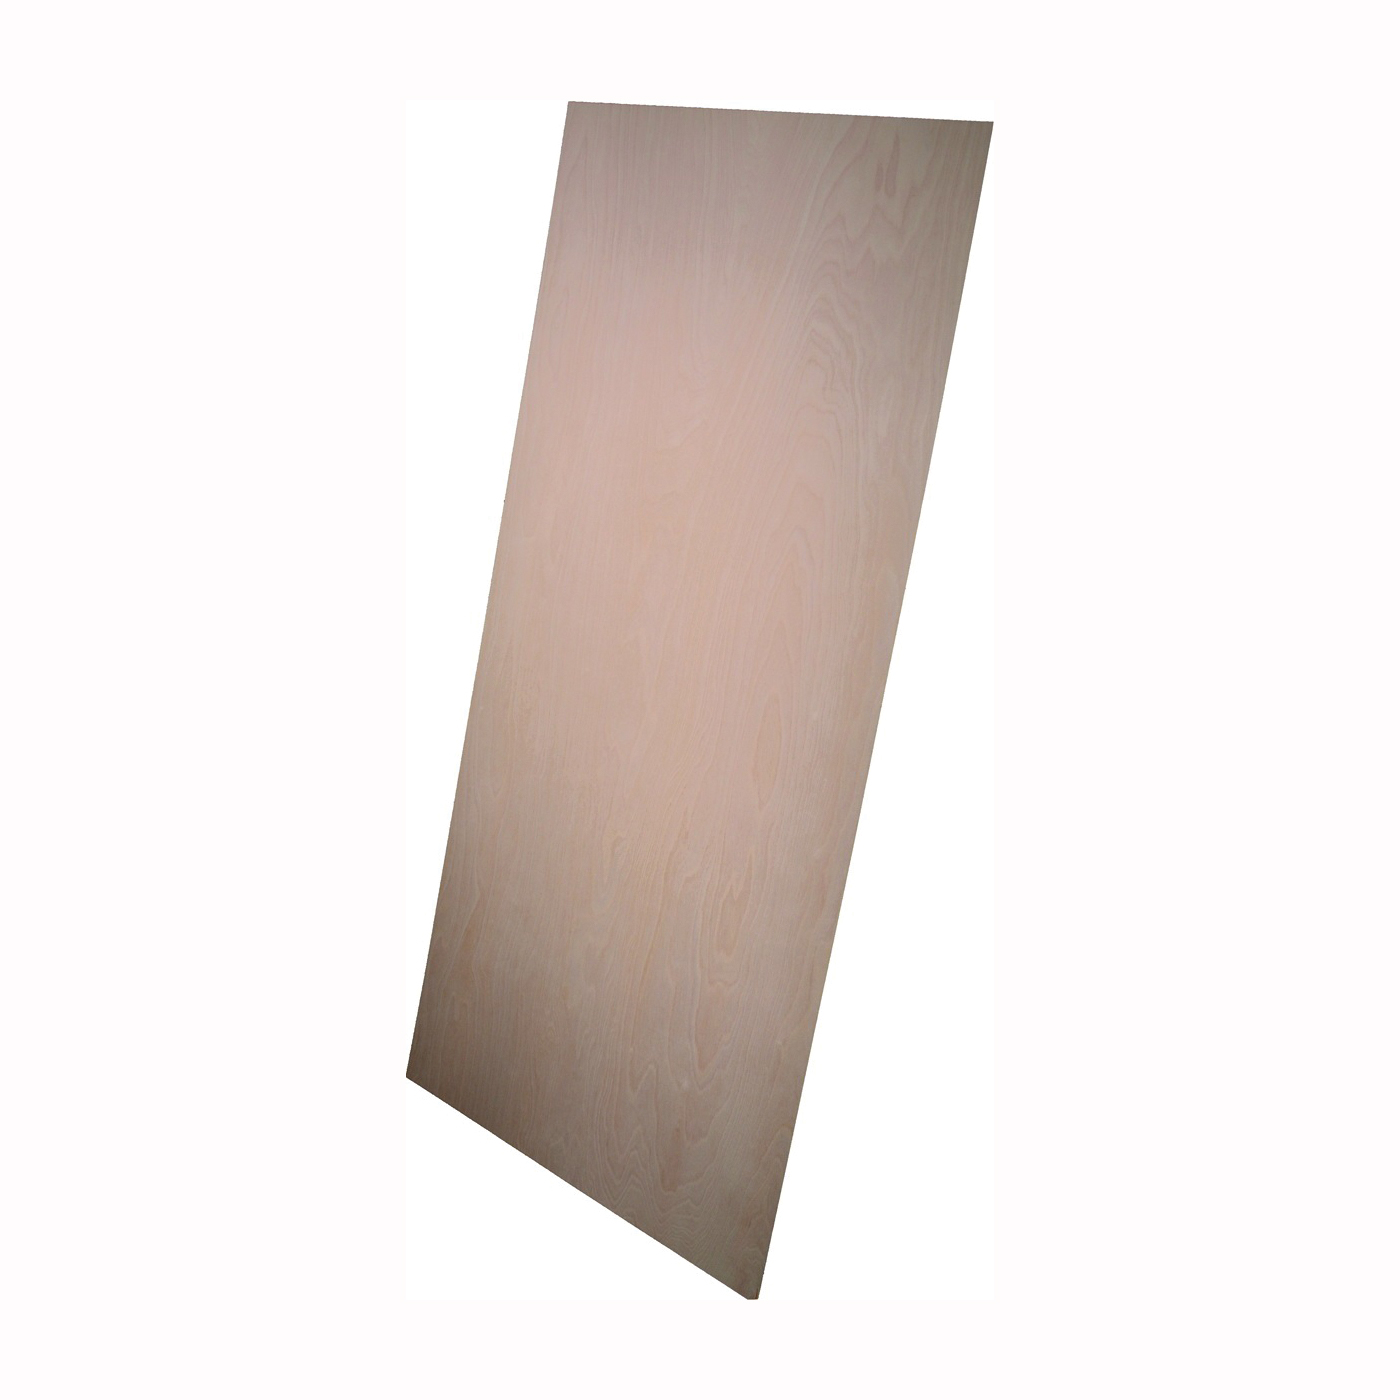 Picture of ALEXANDRIA Moulding PY001-PY048C Plywood